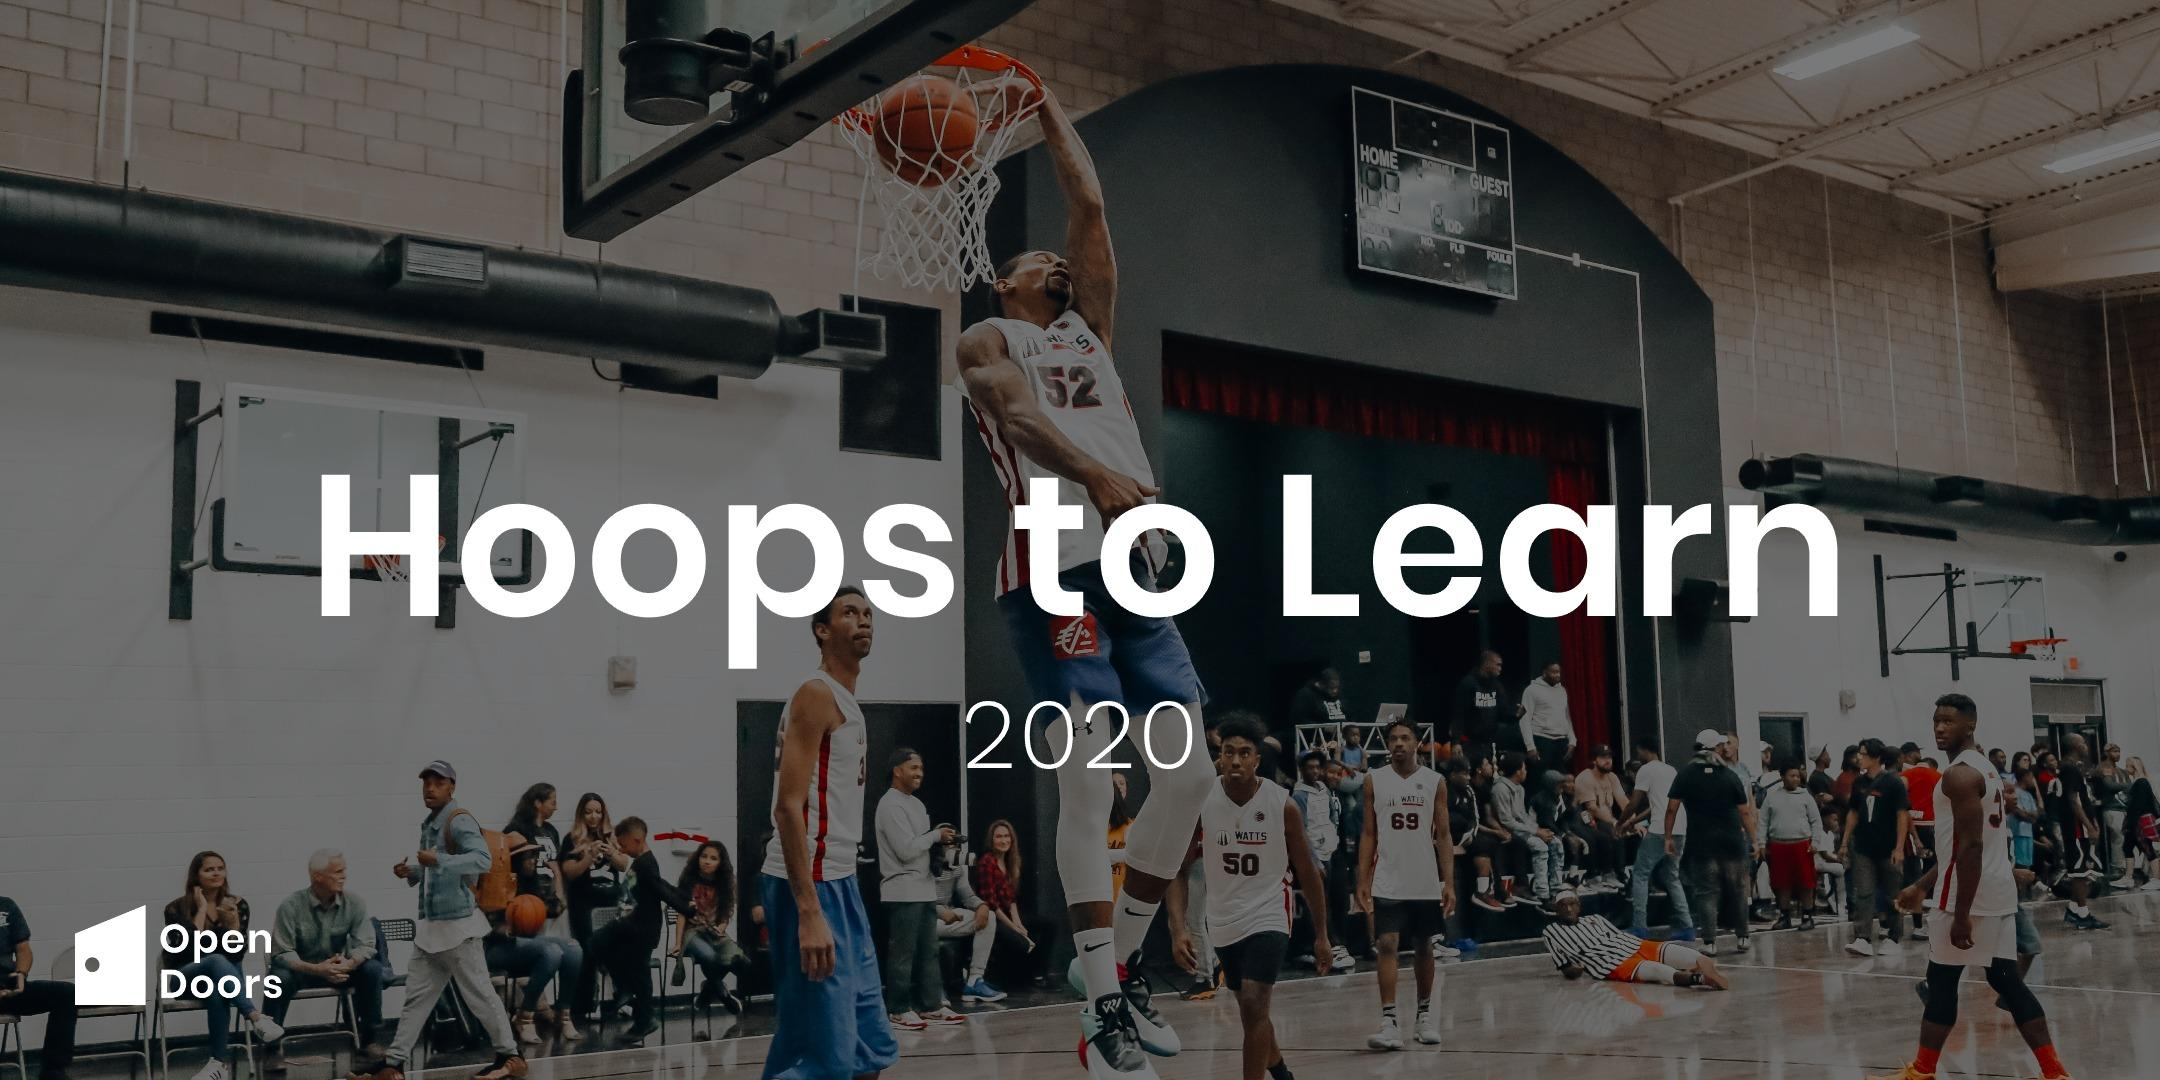 Hoops to Learn Basketball Tournament 2020